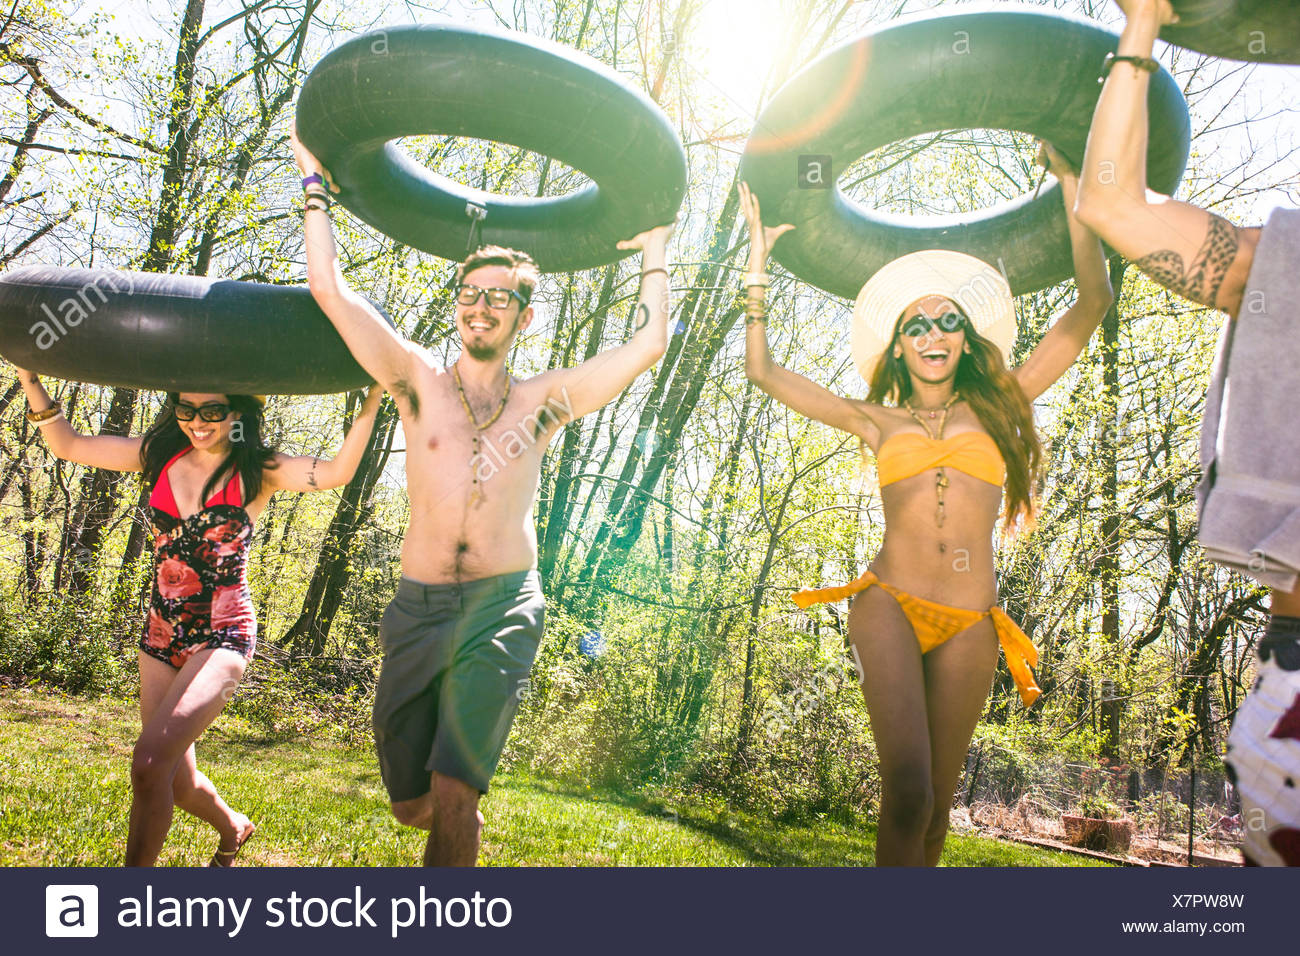 People carrying inner tubes above heads, laughing - Stock Image